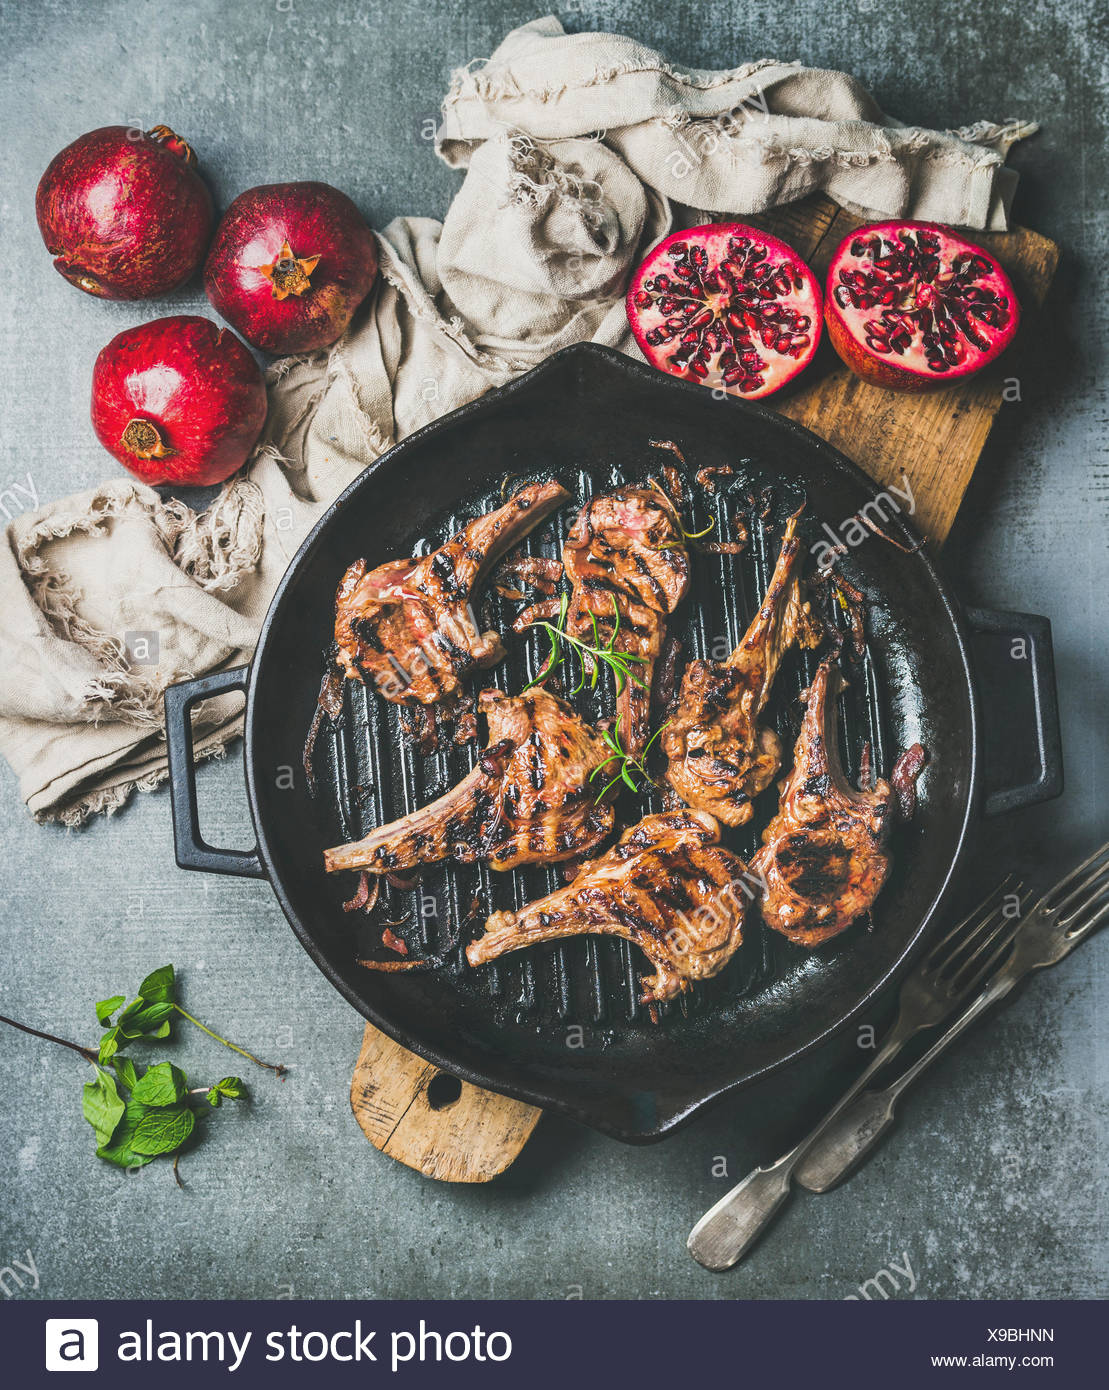 Barbecue dinner. Grilled lamb meat chops with onion and rosemary in black cast iron pan served with fresh pomegranates on wooden board over grey concr - Stock Image